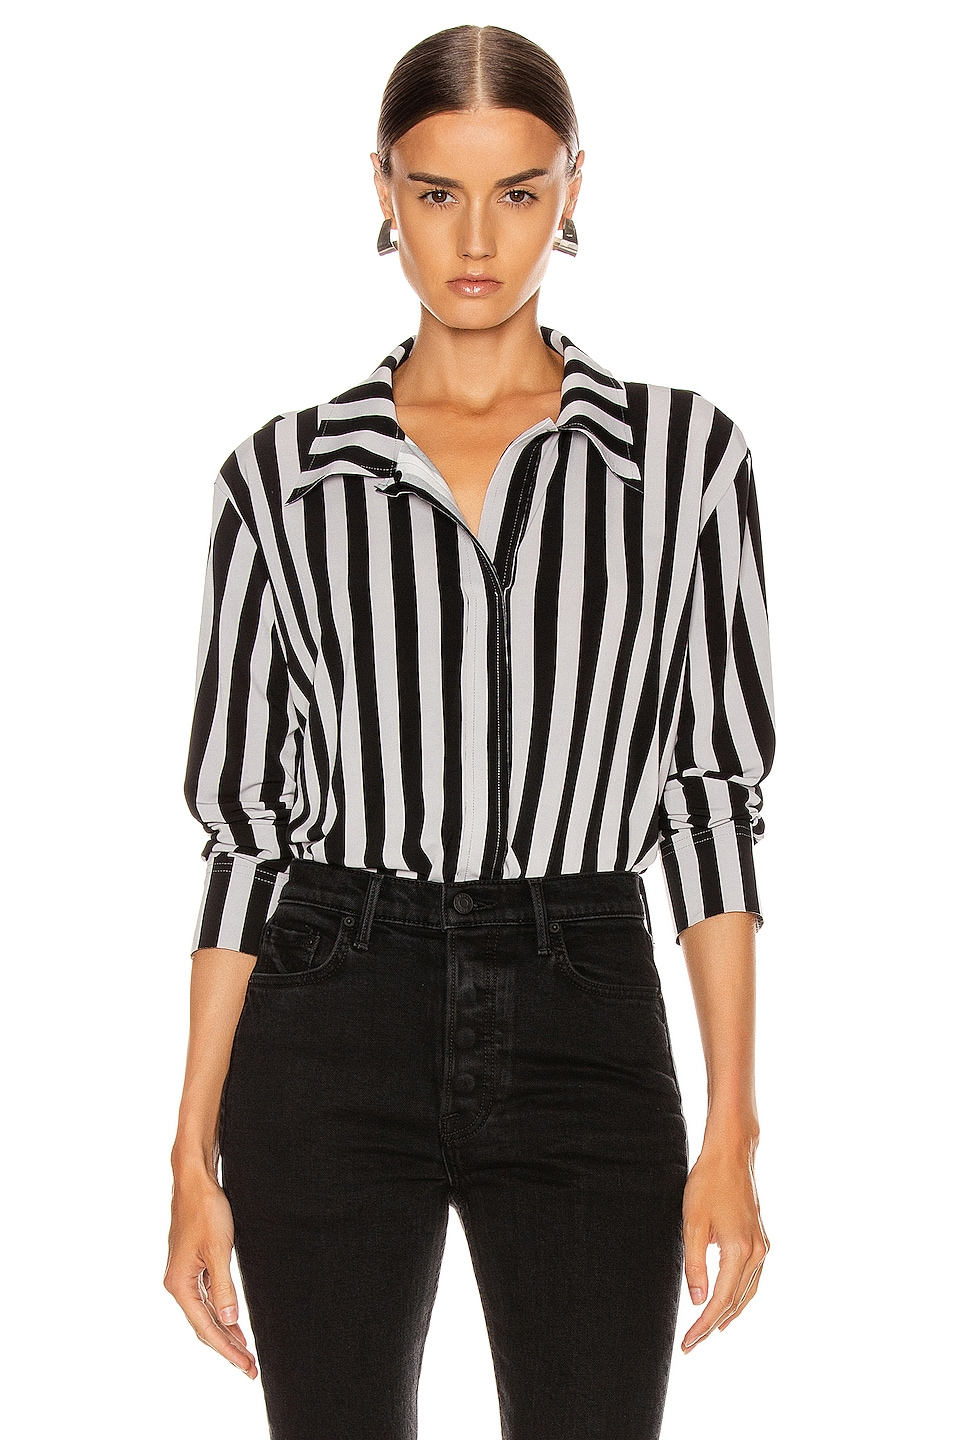 Image 1 of Norma Kamali Boyfriend NK Top in Grey & Black Stripe